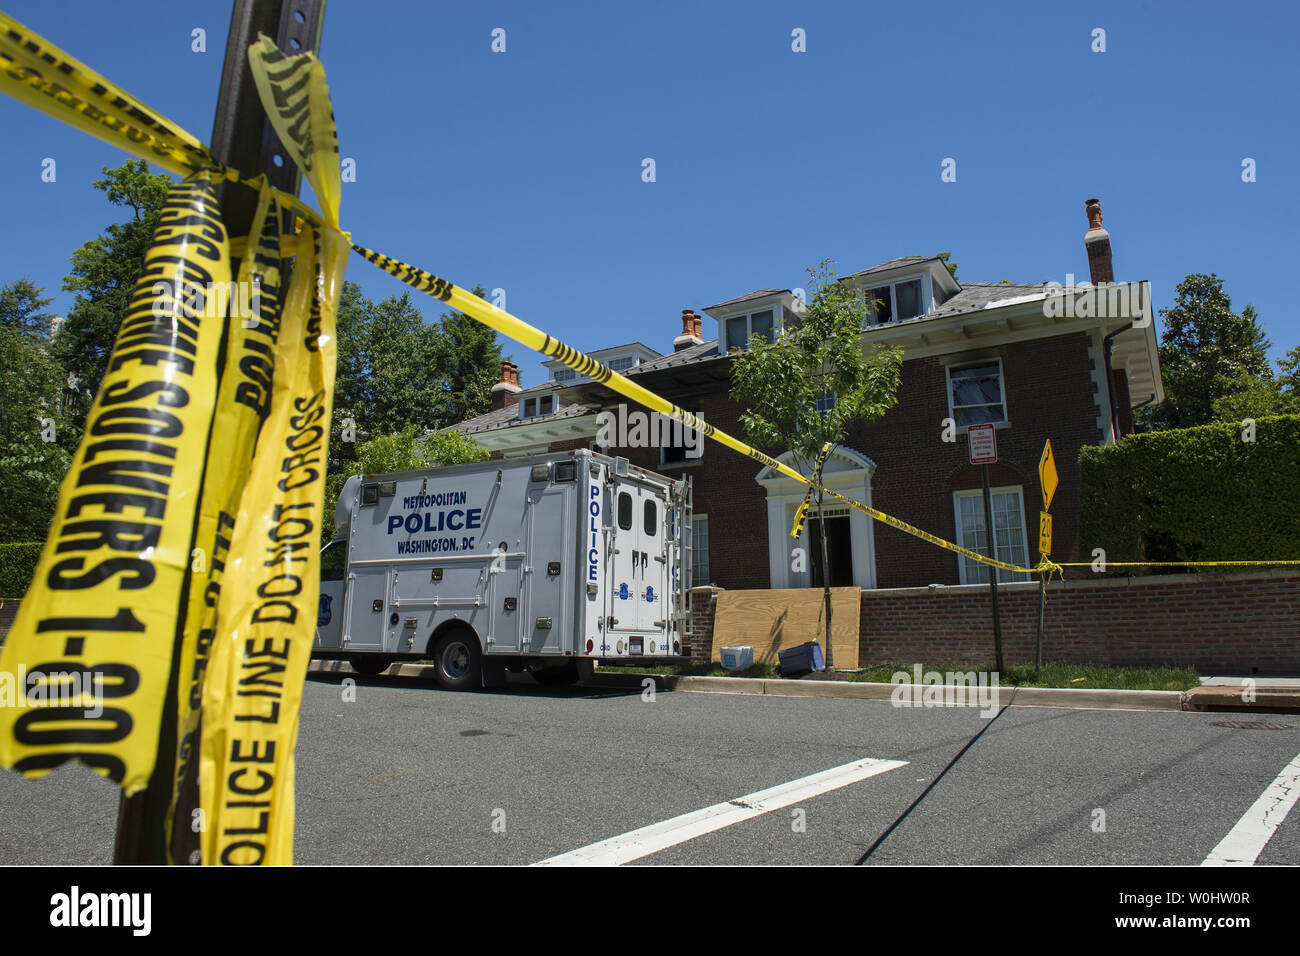 Police continue to inspect the $5 million house in the fashionable Northwest district of Washington, DC on May 23, 2015, where four people were brutally murdered after an apparent ransom was paid on May 14, 2015.  Police say captured suspect Daron Dylon Wint appeared to have accomplices in the murder of Savvas Savopoulos, his wife Amy, son Philip and housekeeper Veralicia Figueroa.  The lead on Wint apparently came from his DNA on a pizza crust.  Photo by Pat Benic/UPI - Stock Image